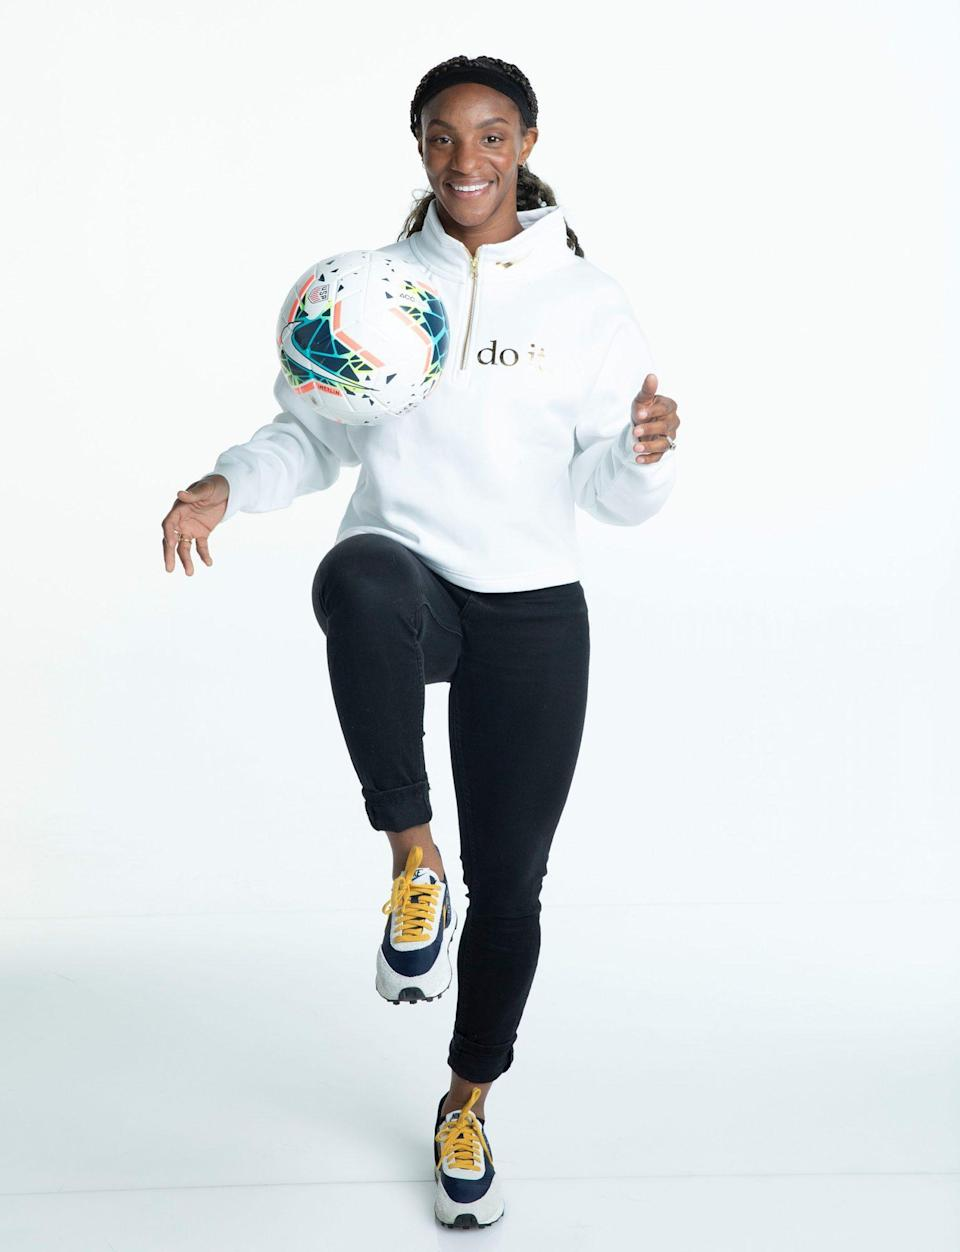 "<p>Dunn, 28, has played with the U.S. Women's National soccer team on-and-off since 2013 and helped the team win the 2019 Women's World Cup. The soccer champion plays multiple positions for her current club, the North Carolina Courage. Dunn joined her national team teammates in pushing for pay equity, <a href=""https://people.com/sports/crystal-dunn-interview-soccer-world-cup/"" rel=""nofollow noopener"" target=""_blank"" data-ylk=""slk:and previously told PEOPLE"" class=""link rapid-noclick-resp"">and previously told PEOPLE</a>, ""We feel like as athletes we don't just kick a ball for a living. We're human beings, we have feelings and we have a way that we want to live life.""</p>"